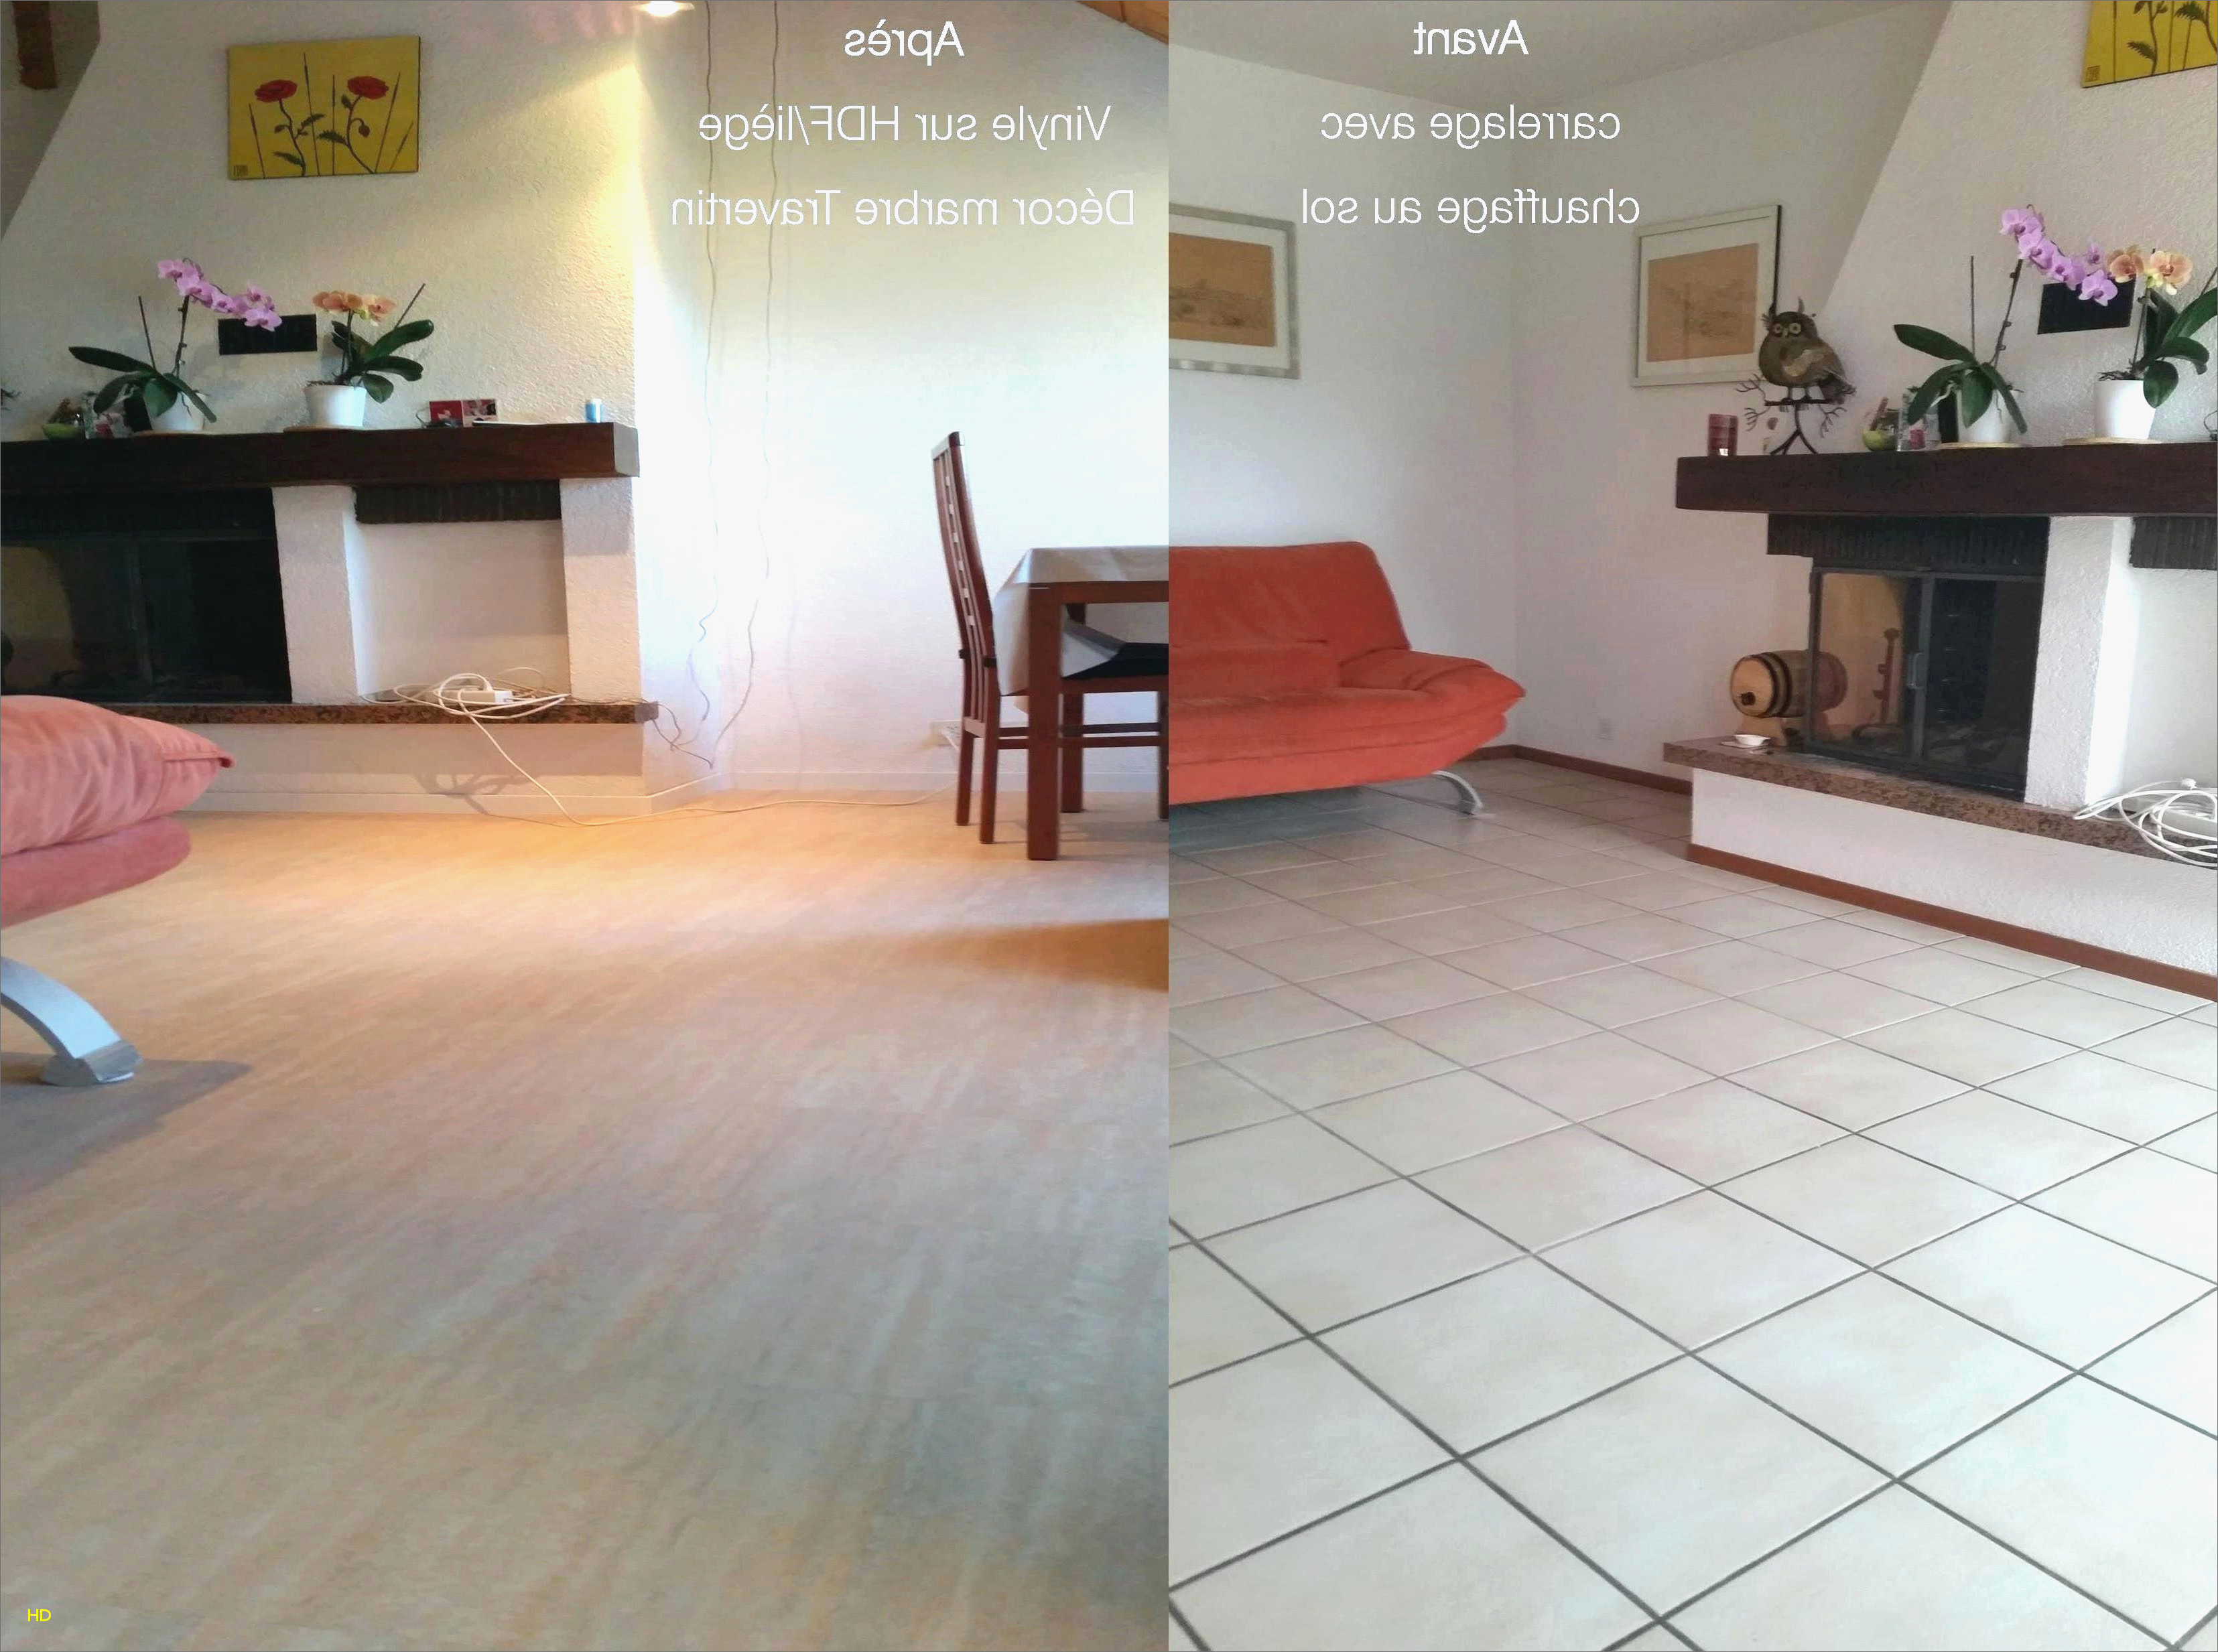 Resine Sol Epoxy Luxe Source D Inspiration Resine Epoxy Sol avec Resine Epoxy Salle De Bain